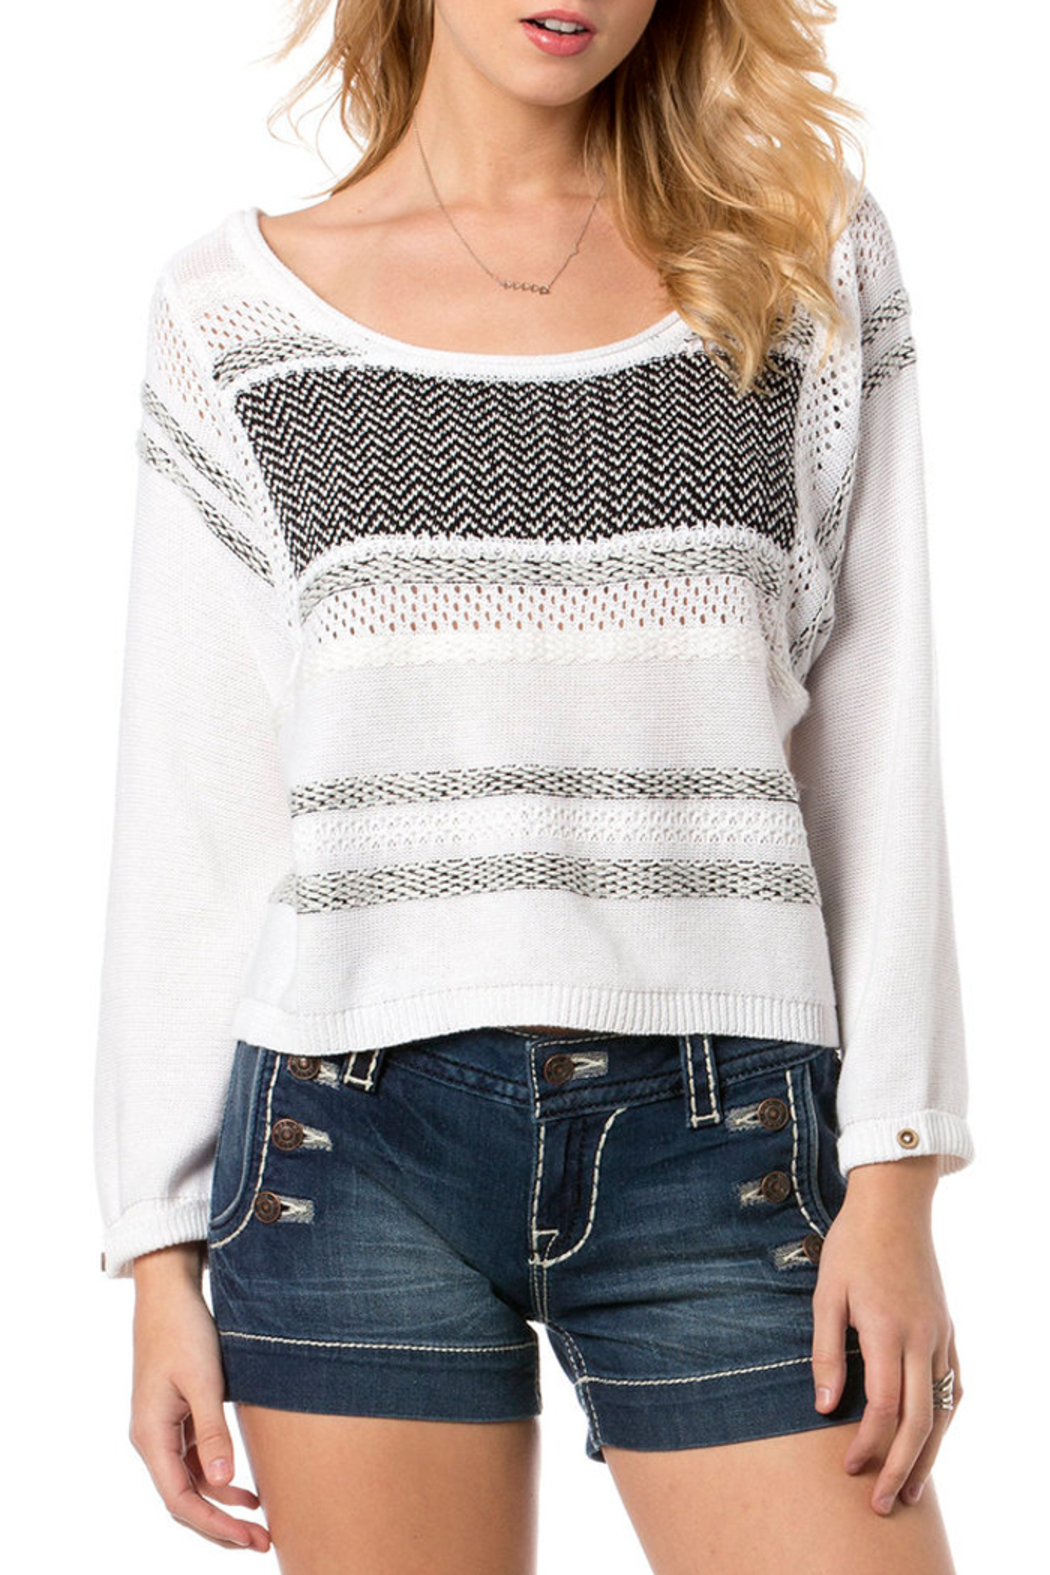 Miss Me White and Black Knit Sweater from New York by Luna ...